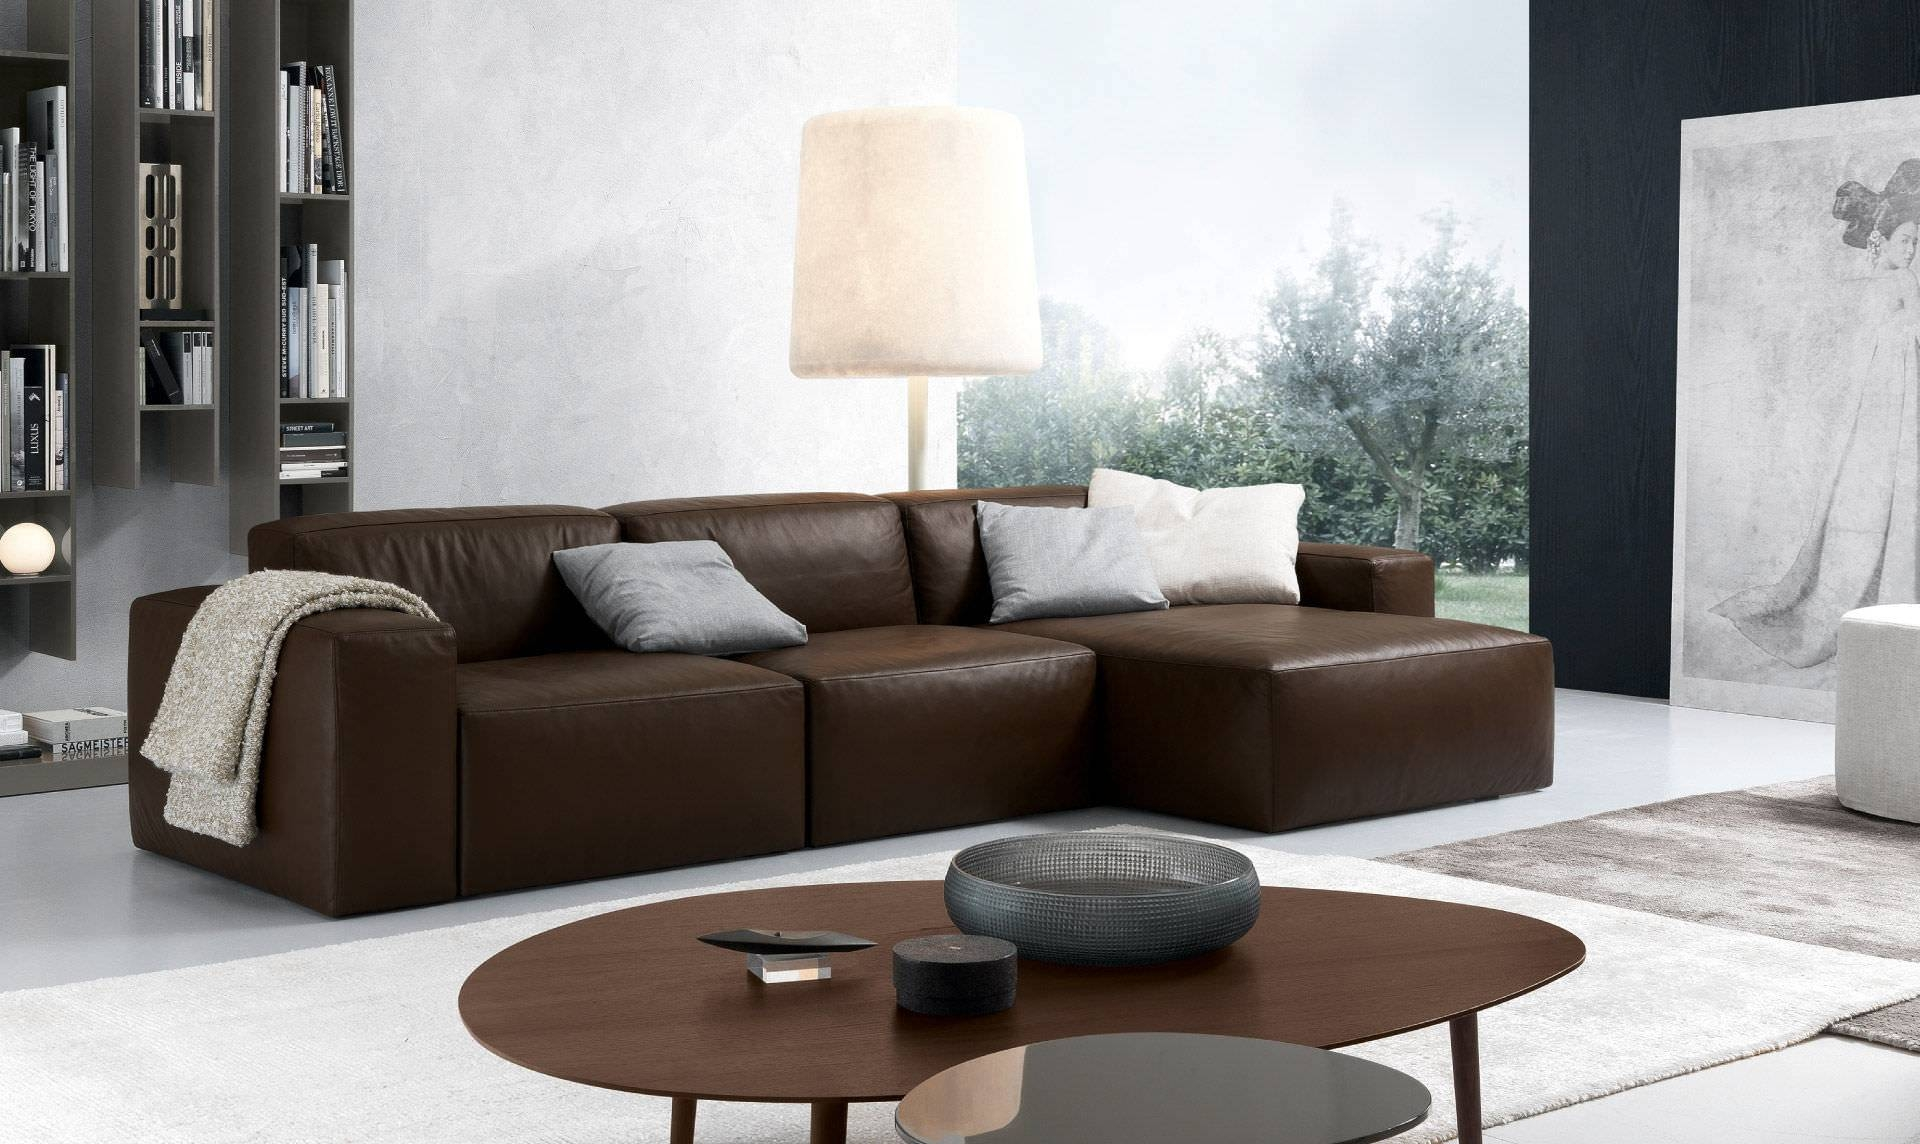 Corner Sofa / Contemporary / Leather / 3-Seater - Daniel regarding Contemporary Brown Leather Sofas (Image 9 of 15)